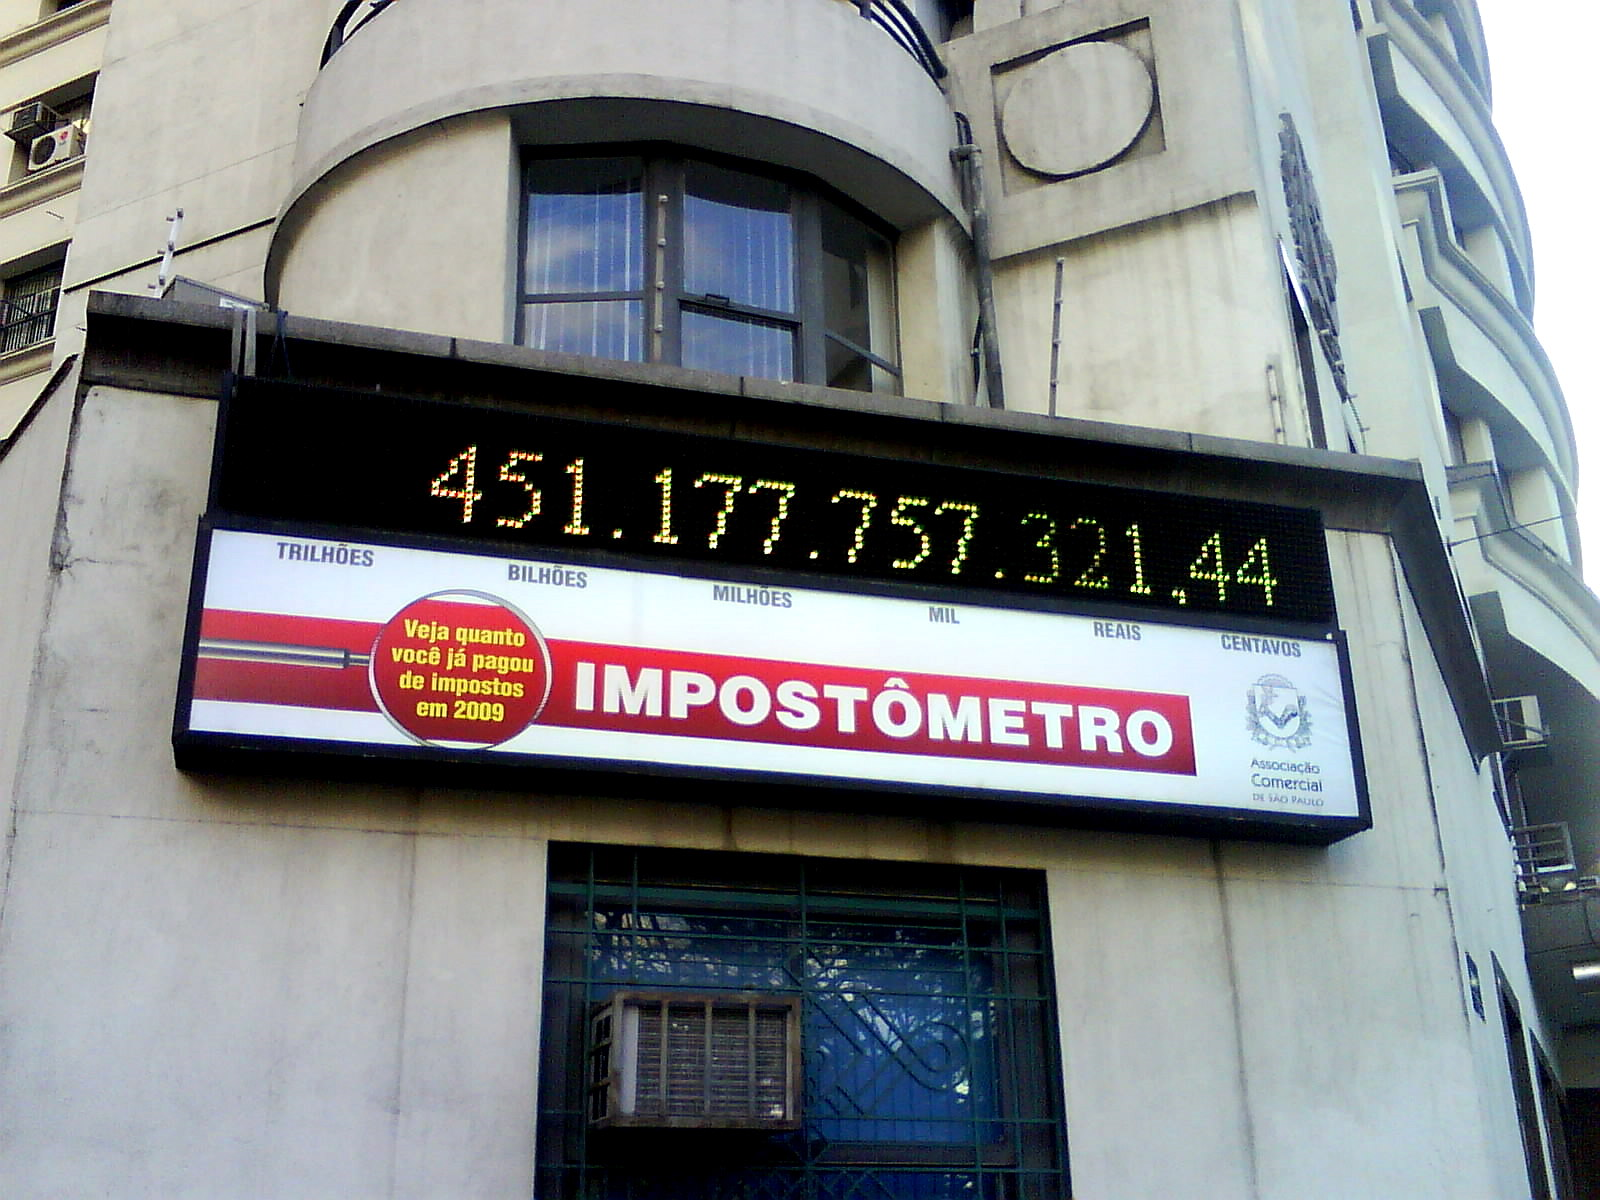 Impostômetro -  a counter showing how much in taxes were paid by brazilian people, Photo by Bruno Pedrozo on Flickr. CC BY 2.0